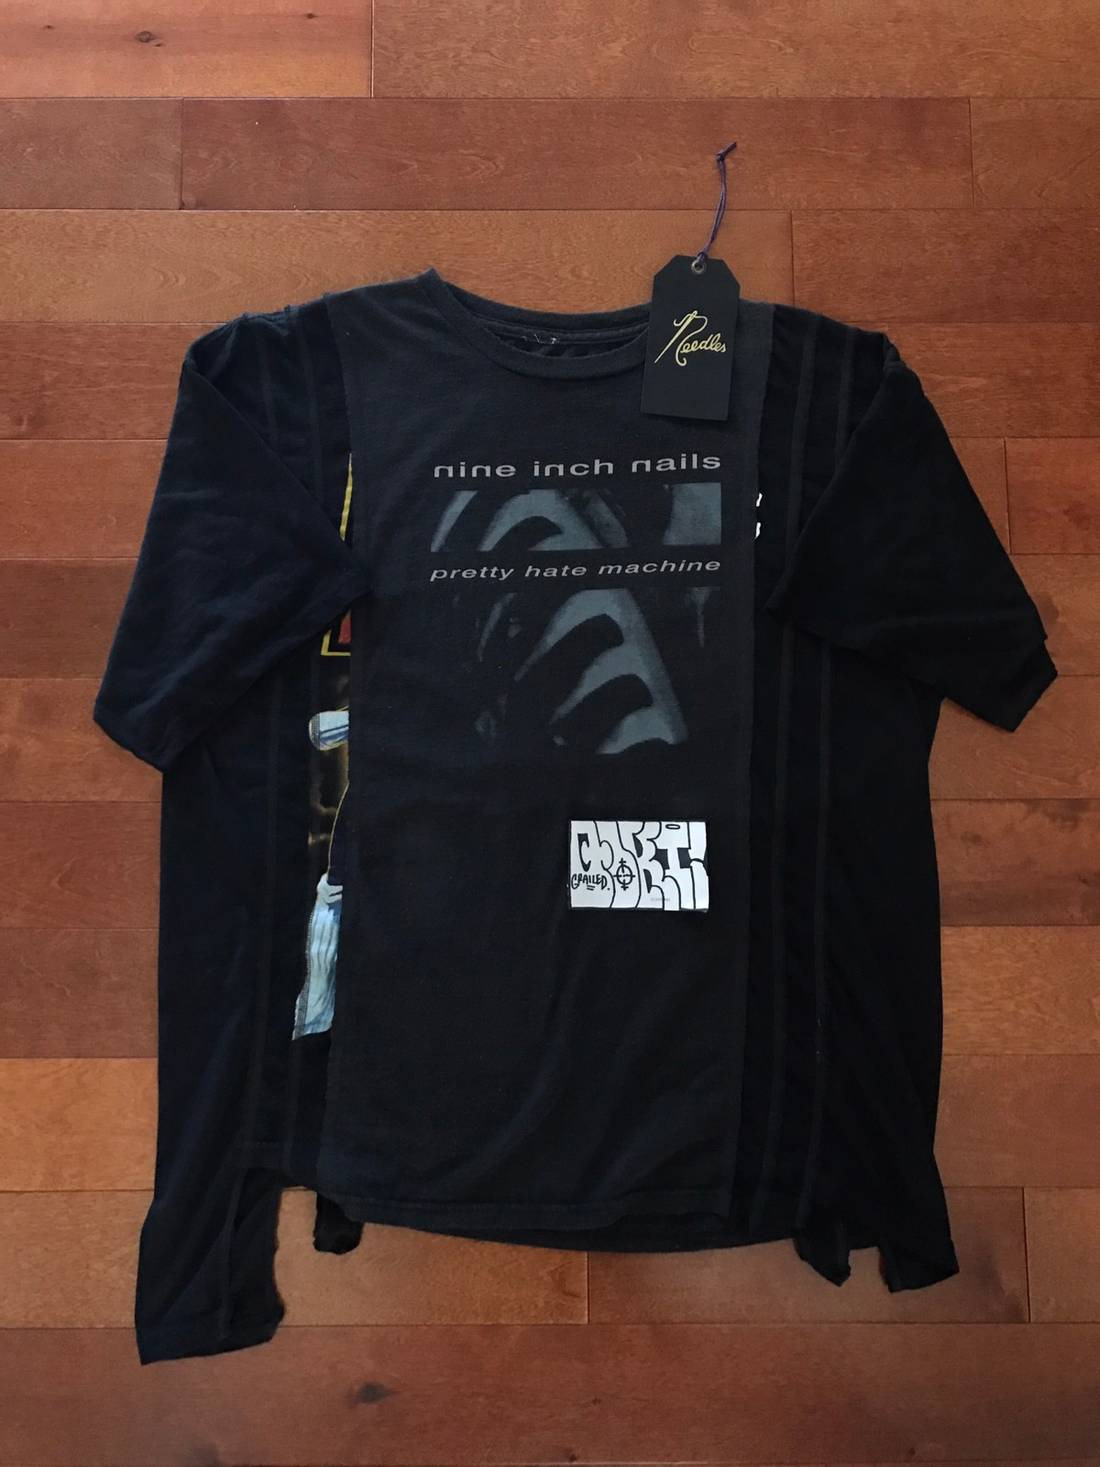 Needles Rebuild by Needles 7 Cut Vintage Nine Inch Nails Tee (1 of 1 ...